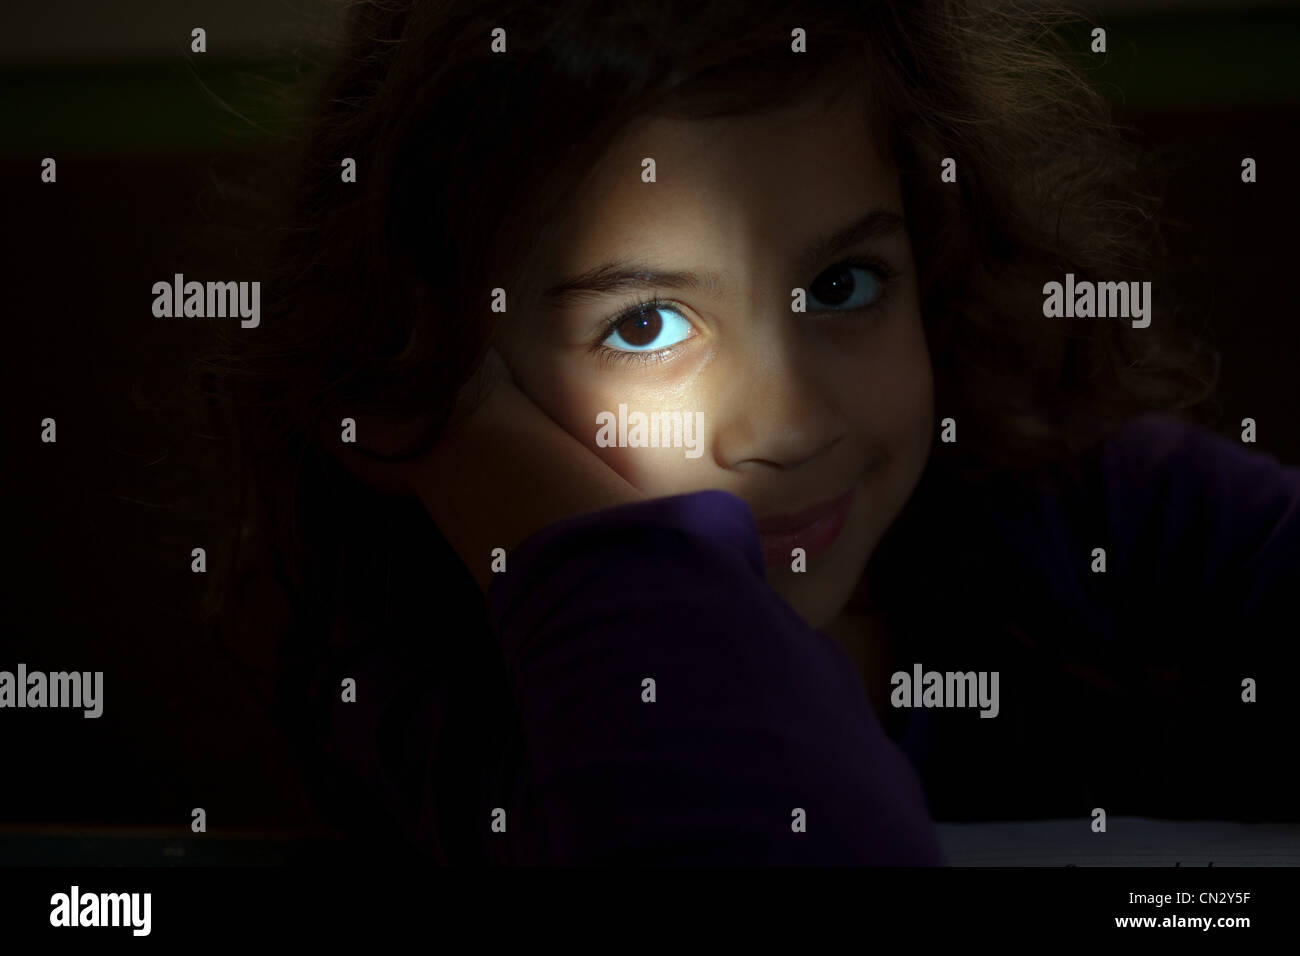 Girl looking at camera from darkness, close up - Stock Image